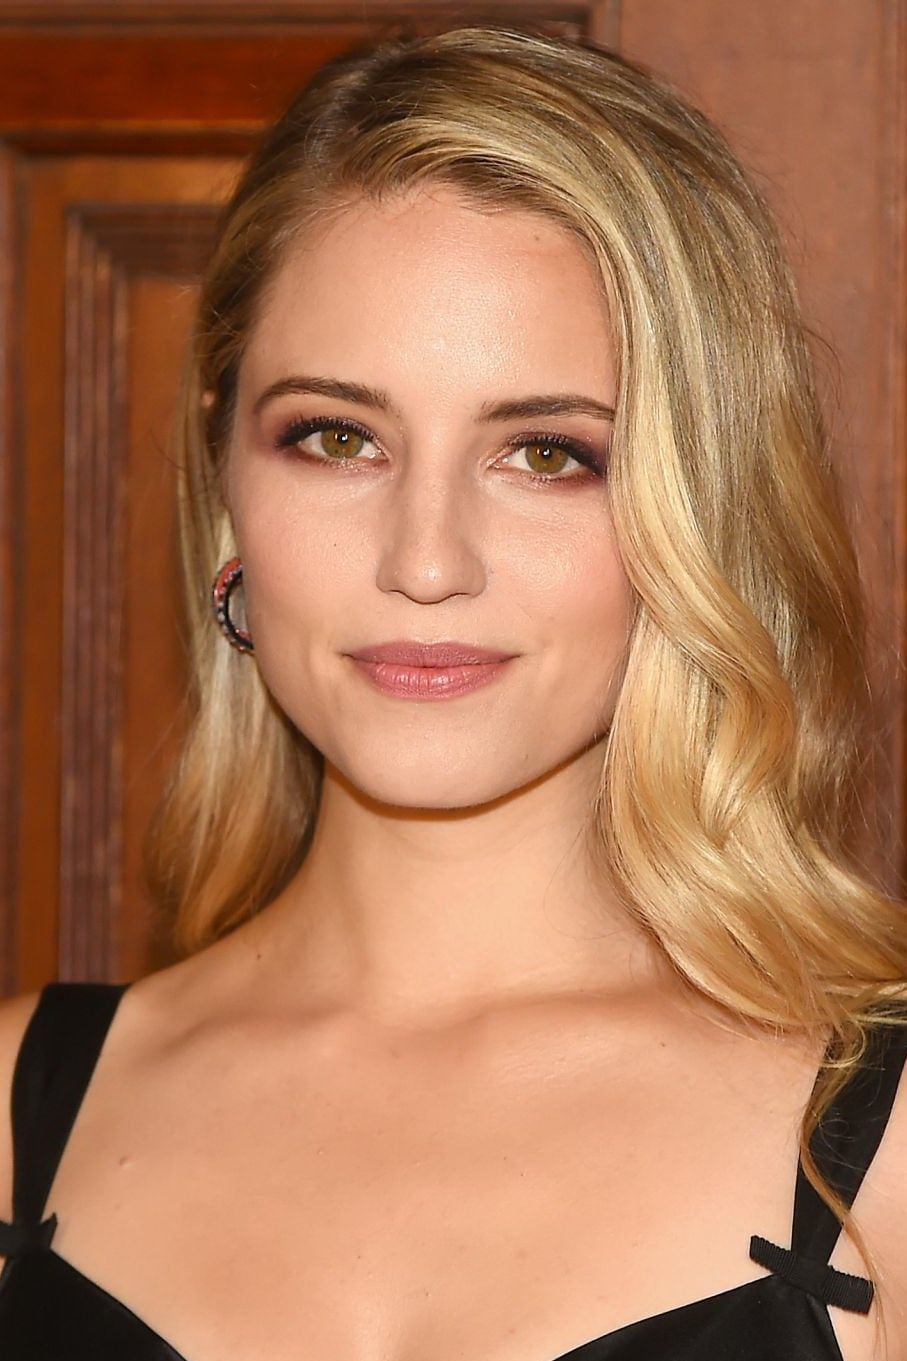 Dianna Agron - Profile Images — The Movie Database (TMDb)